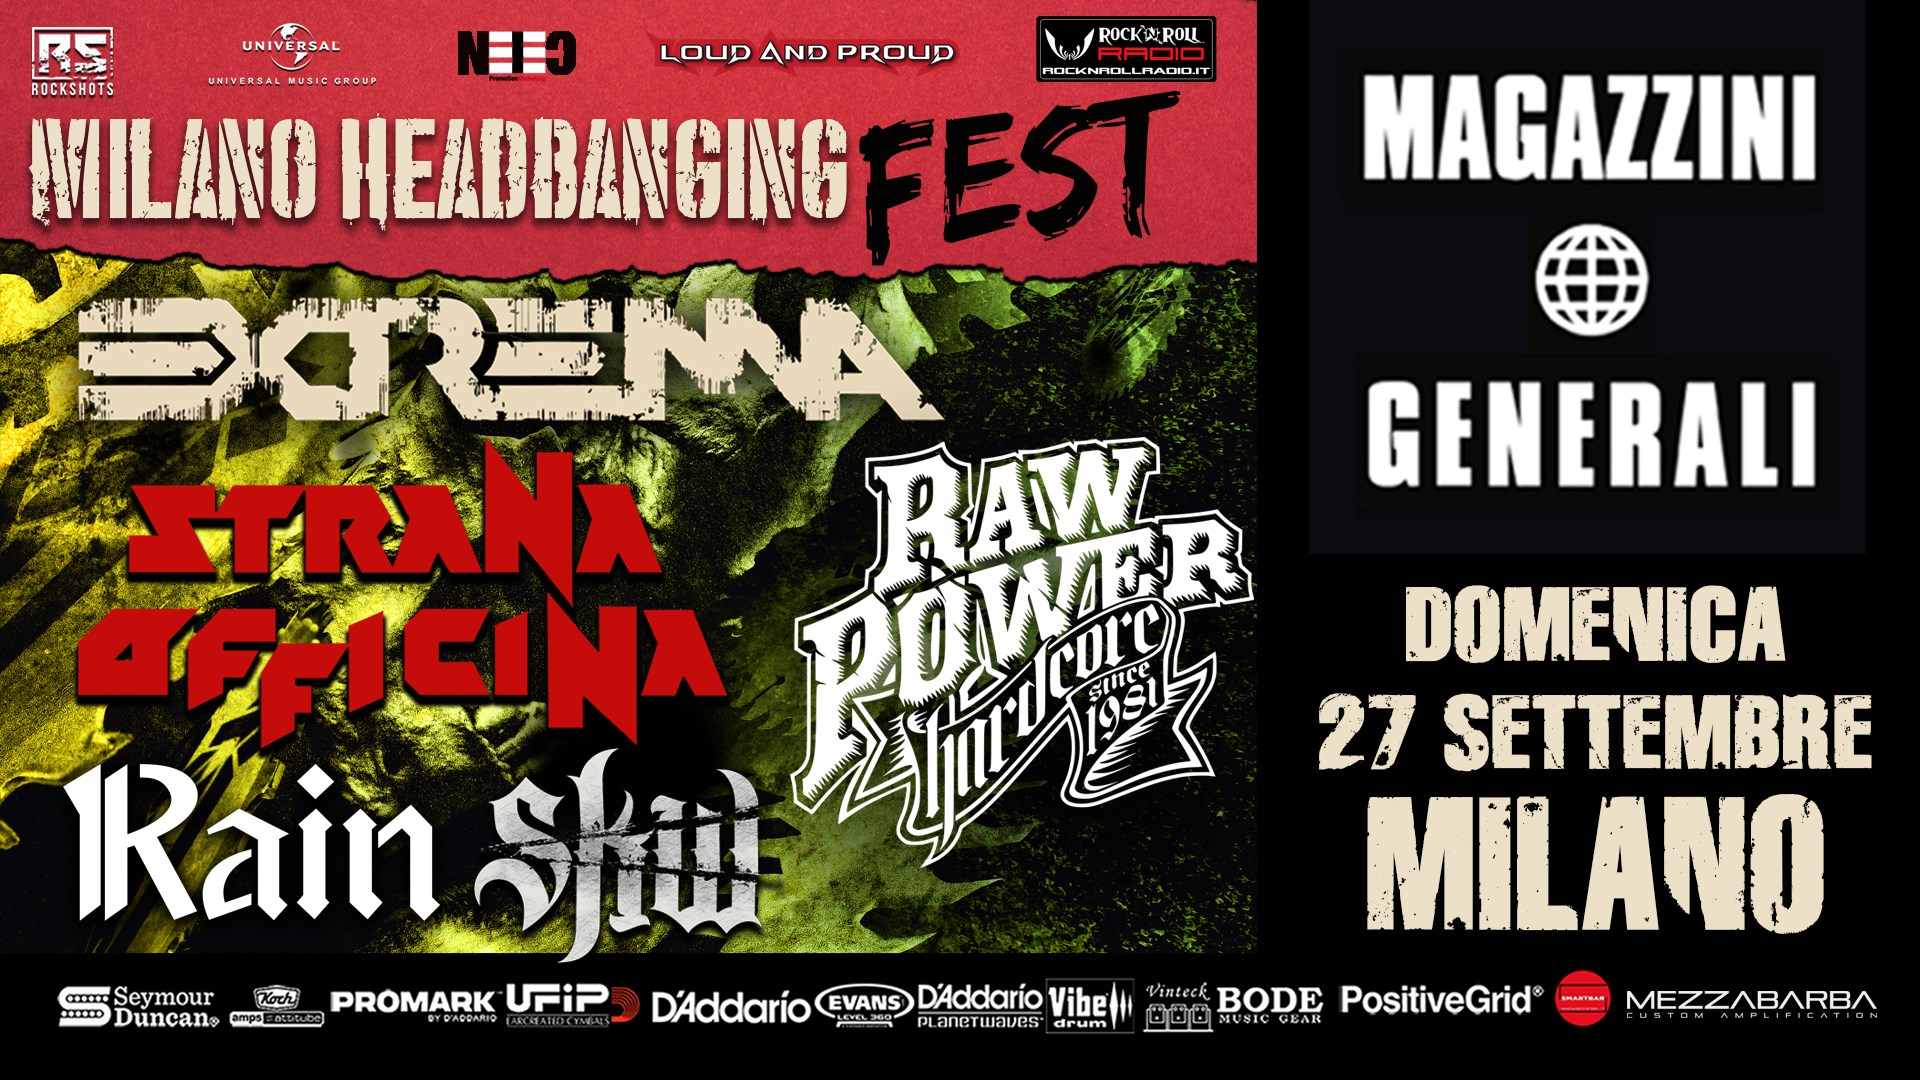 MILANO HEADBANGING FEST 2020: rinviato al 2021 in data da destinarsi